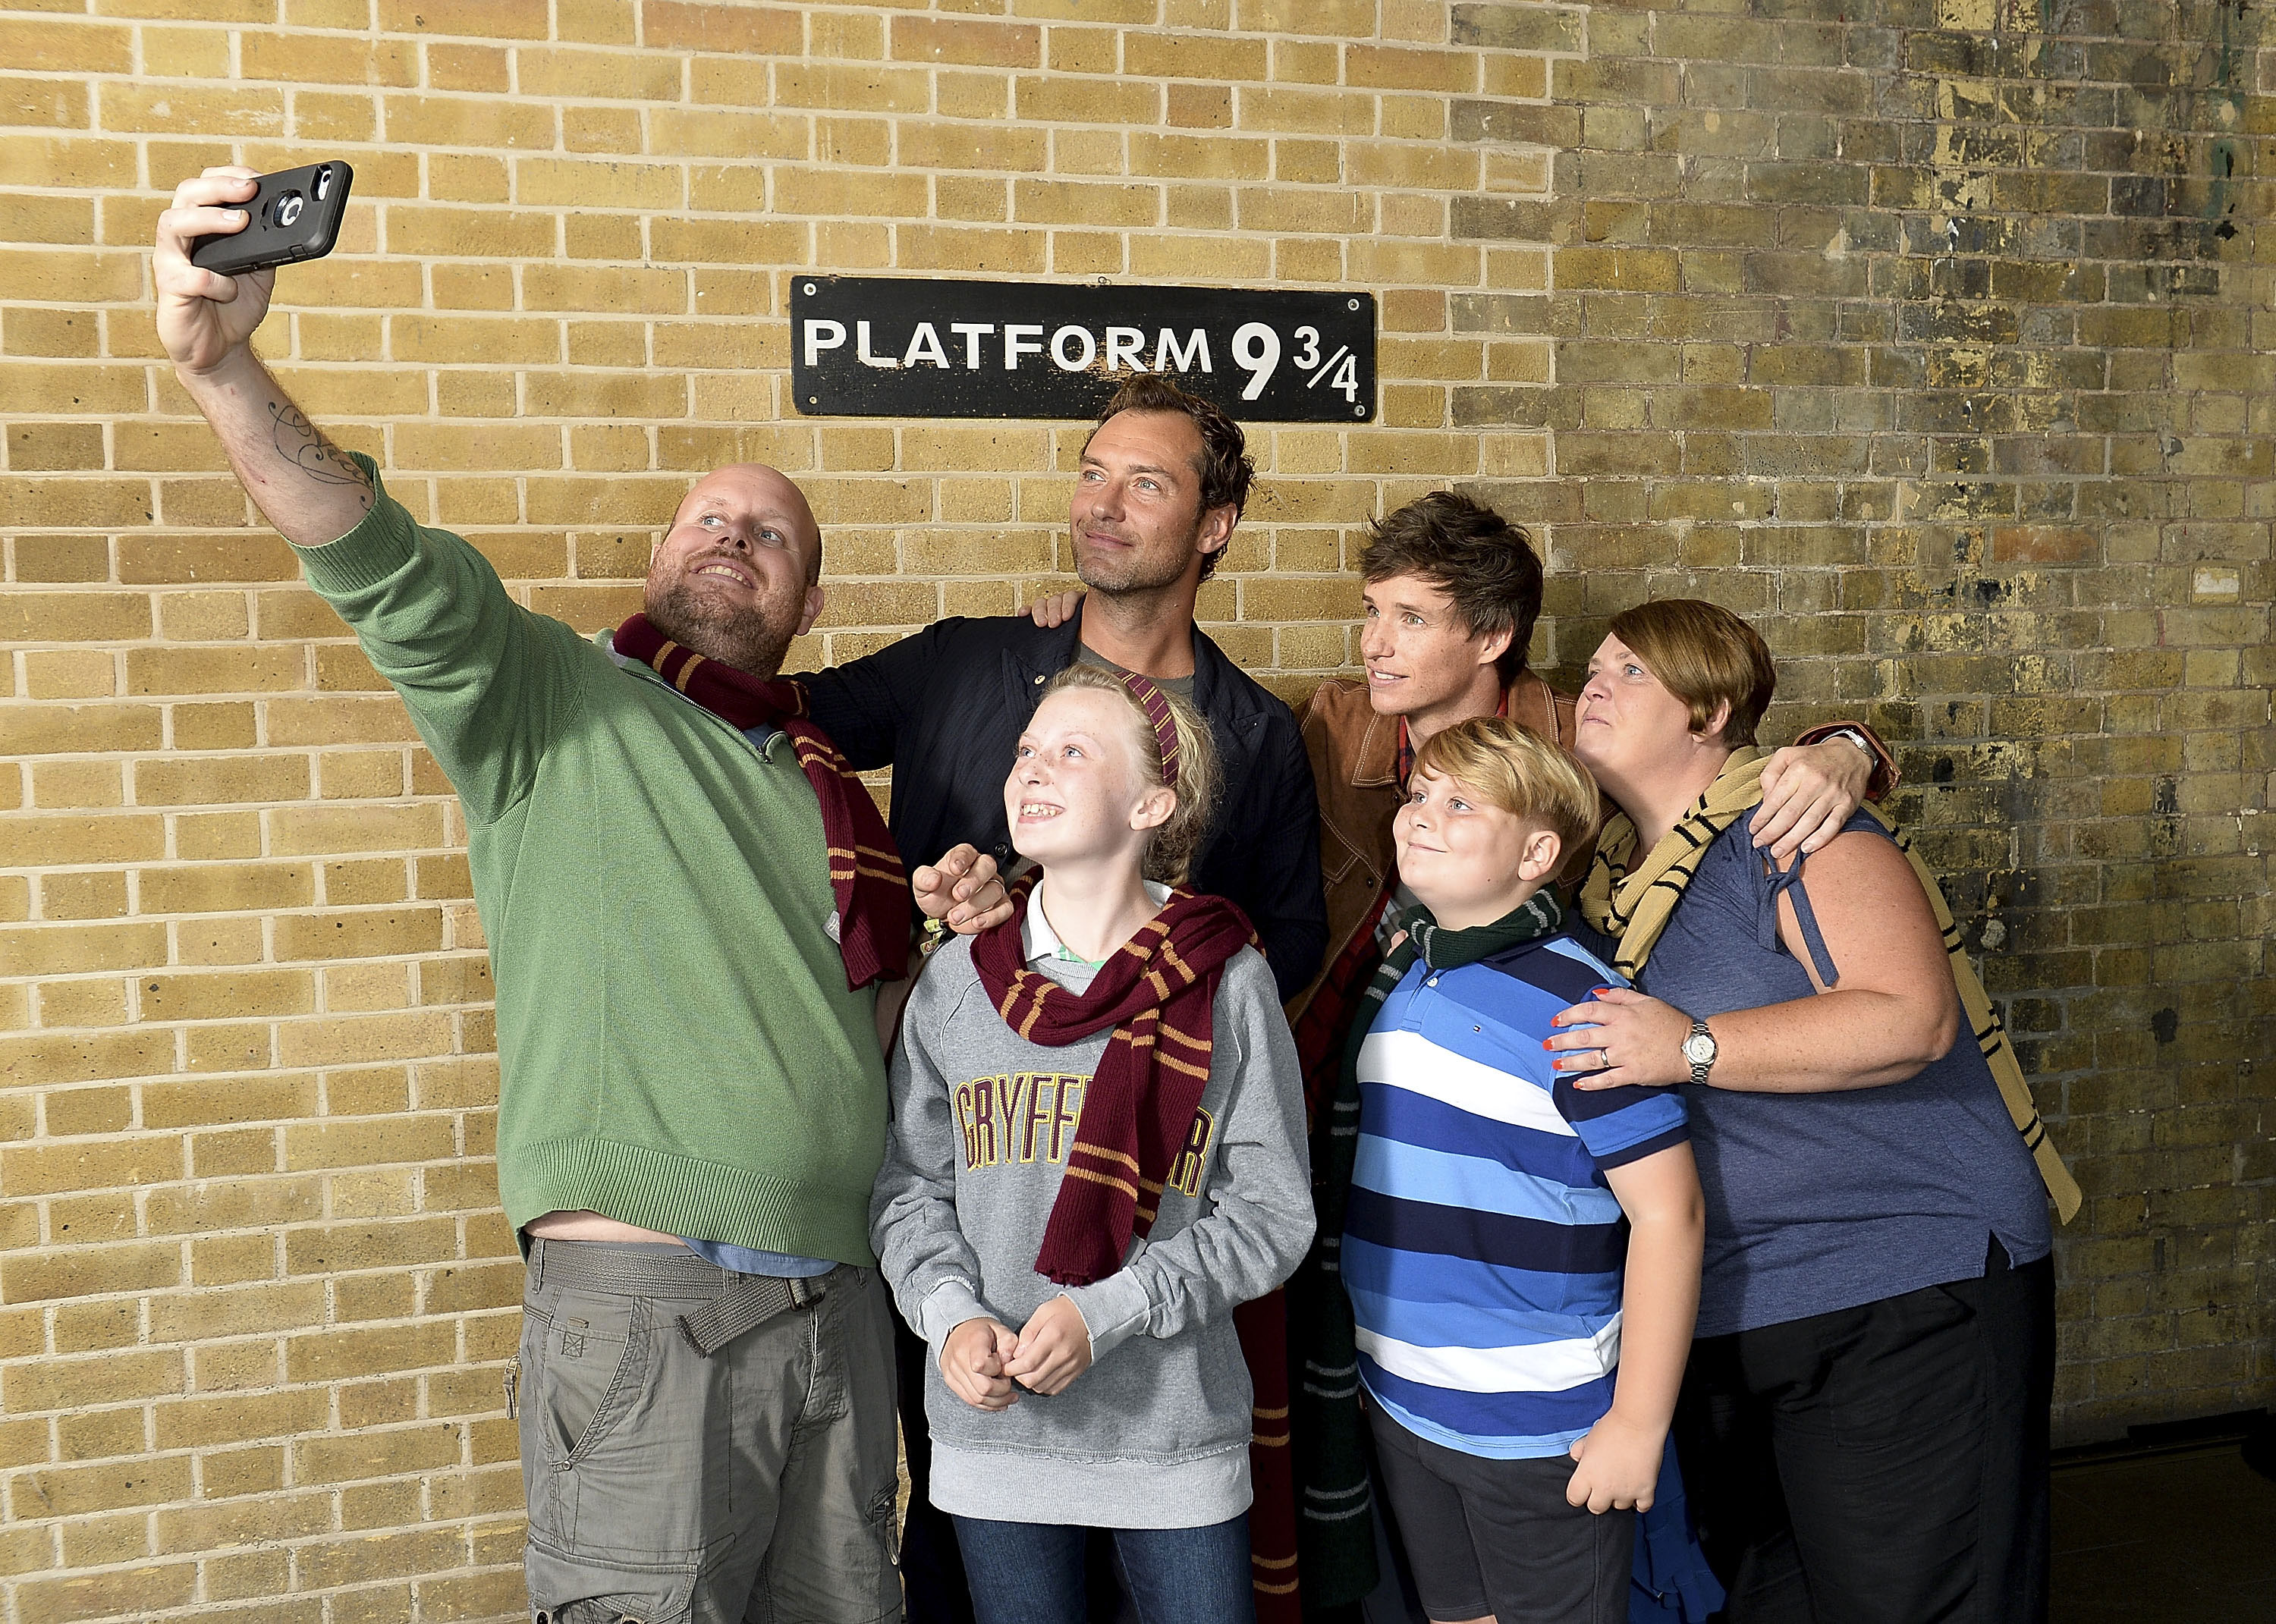 A family of fans – from three different Houses! – snaps a quick selfie with Law and Redmayne.